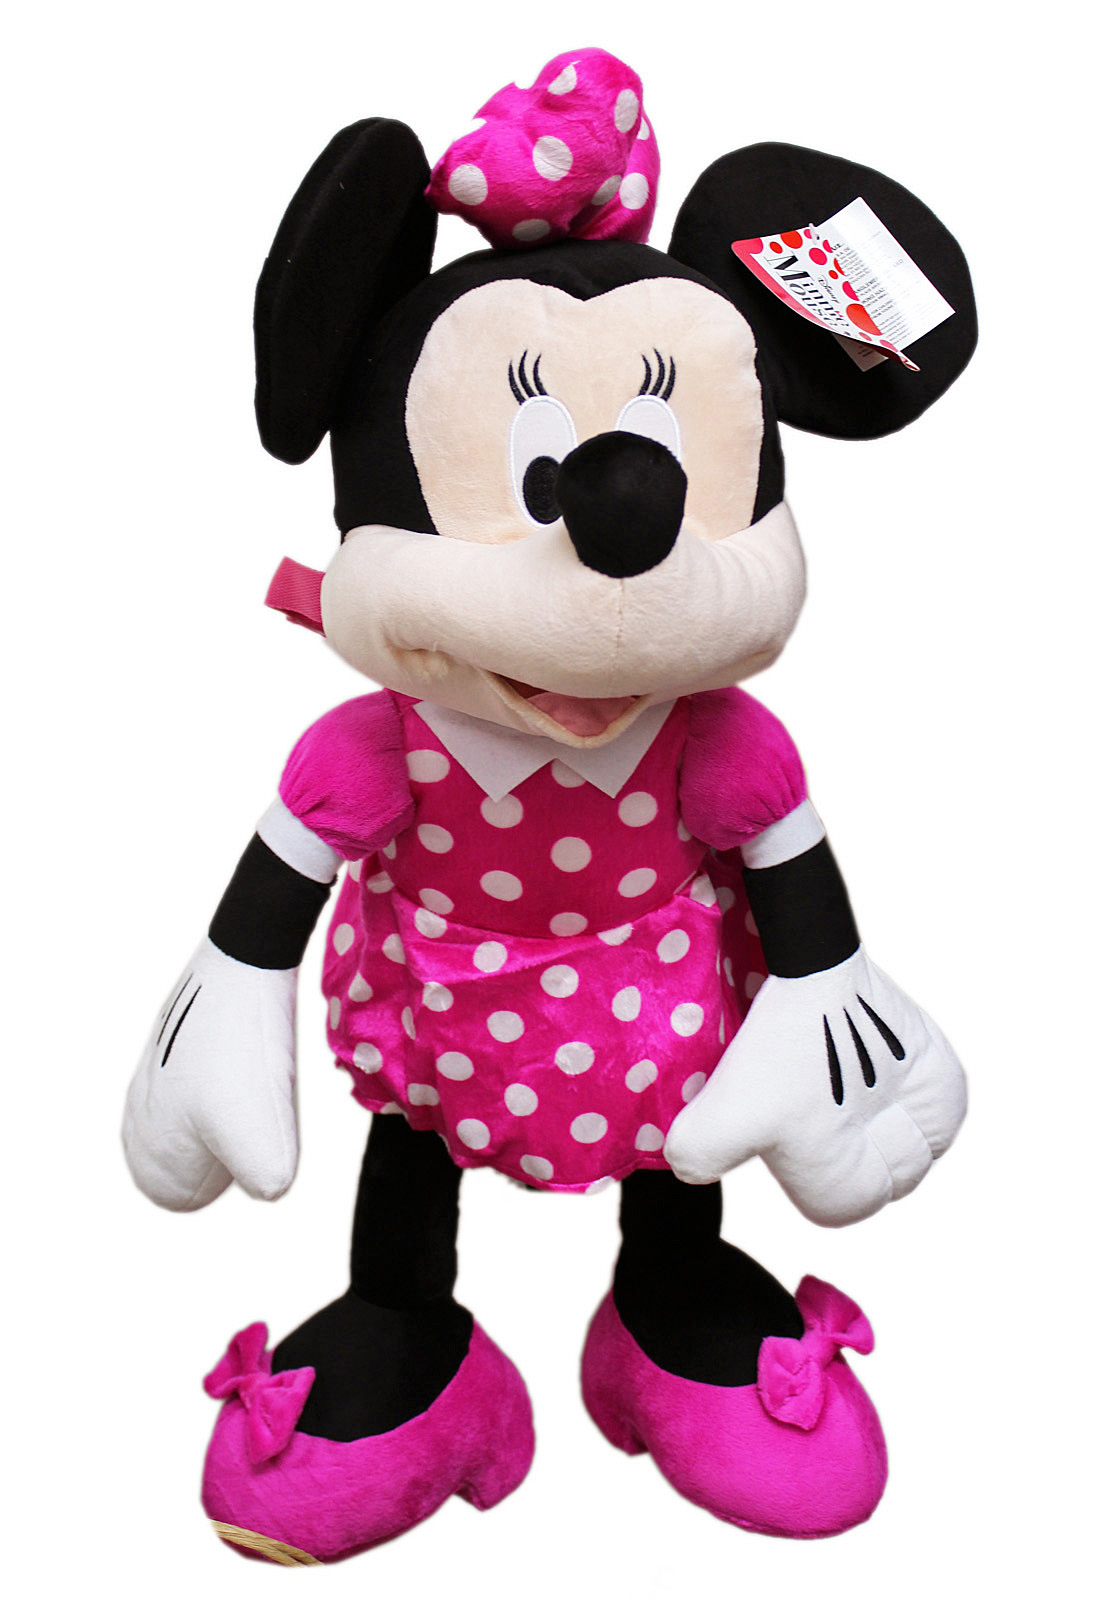 Disney's Minnie Mouse Pink Polka Dot Dress Jumbo Plush Toy (23in) by